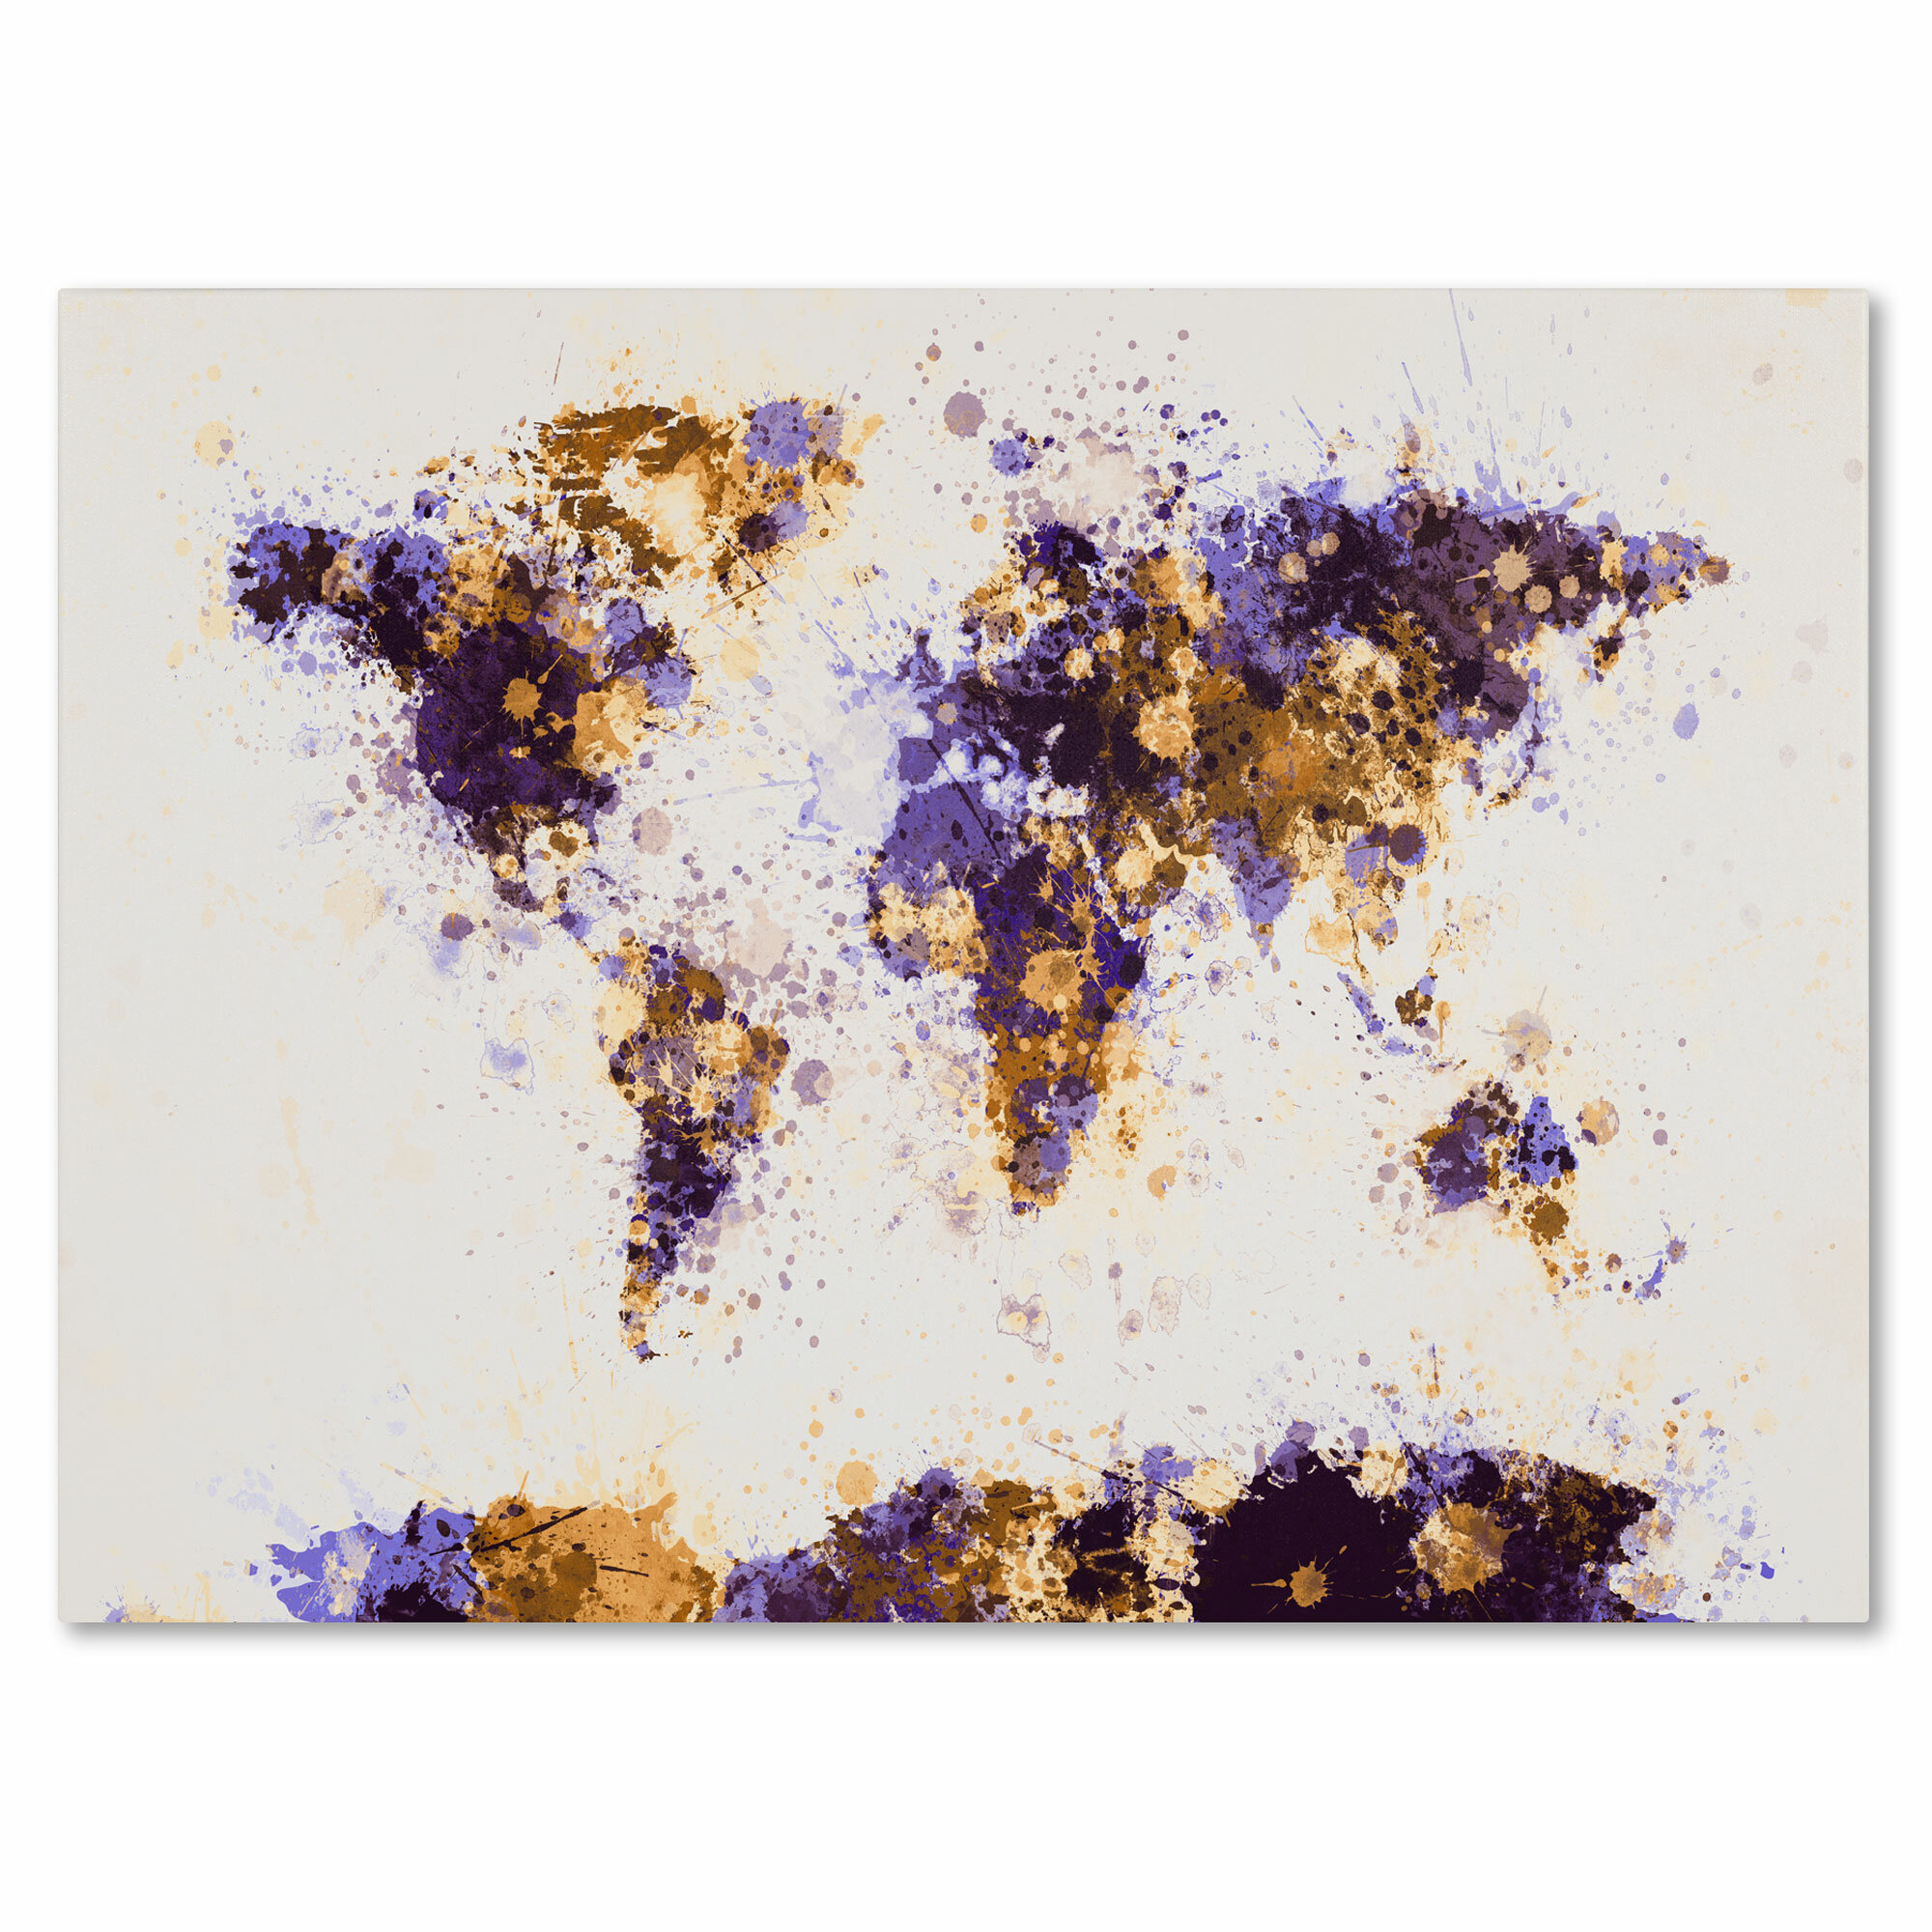 Trademark art paint splashes world map 4 by michael tompsett trademark art paint splashes world map 4 by michael tompsett framed painting print on wrapped canvas wayfair gumiabroncs Image collections